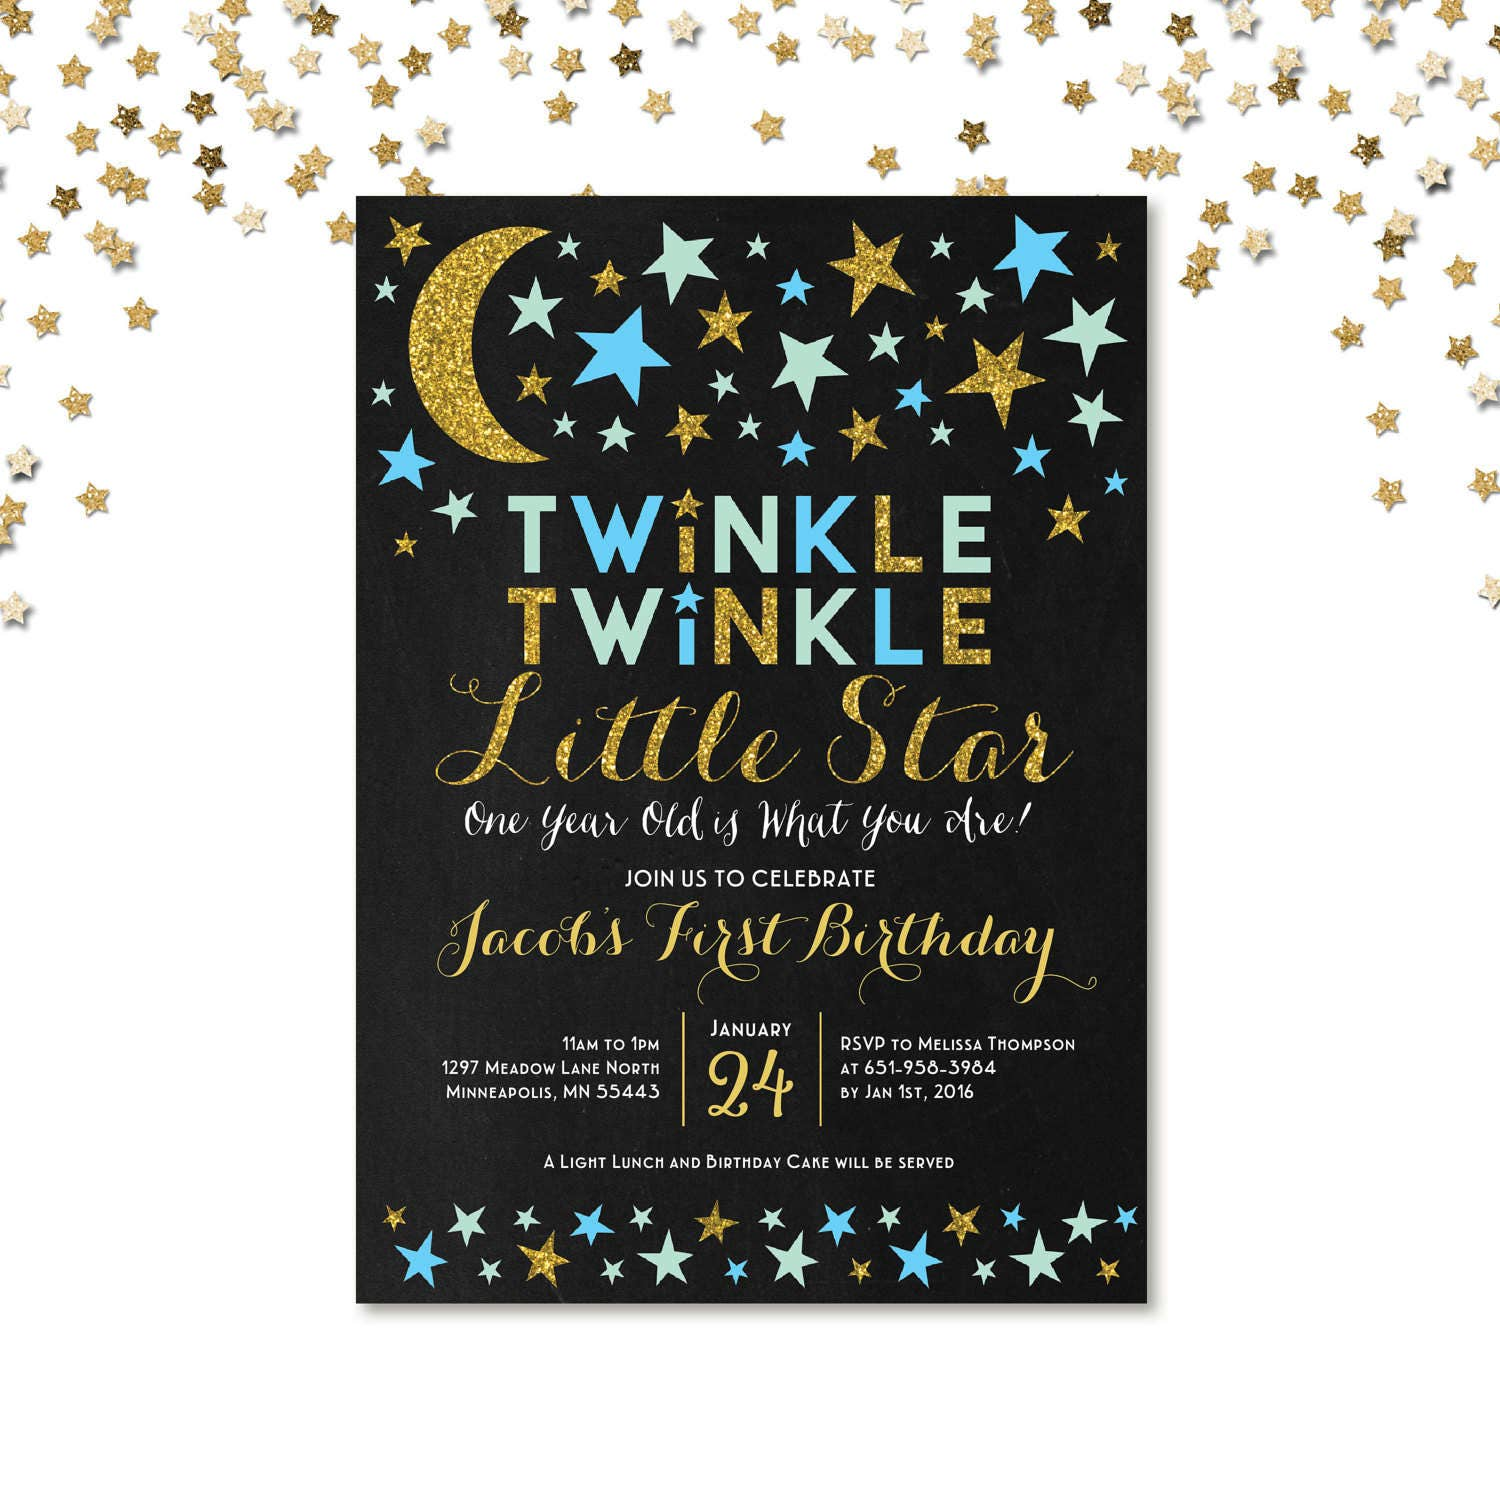 Twinkle Twinkle Little Star First Birthday Invitation Blue and Gold